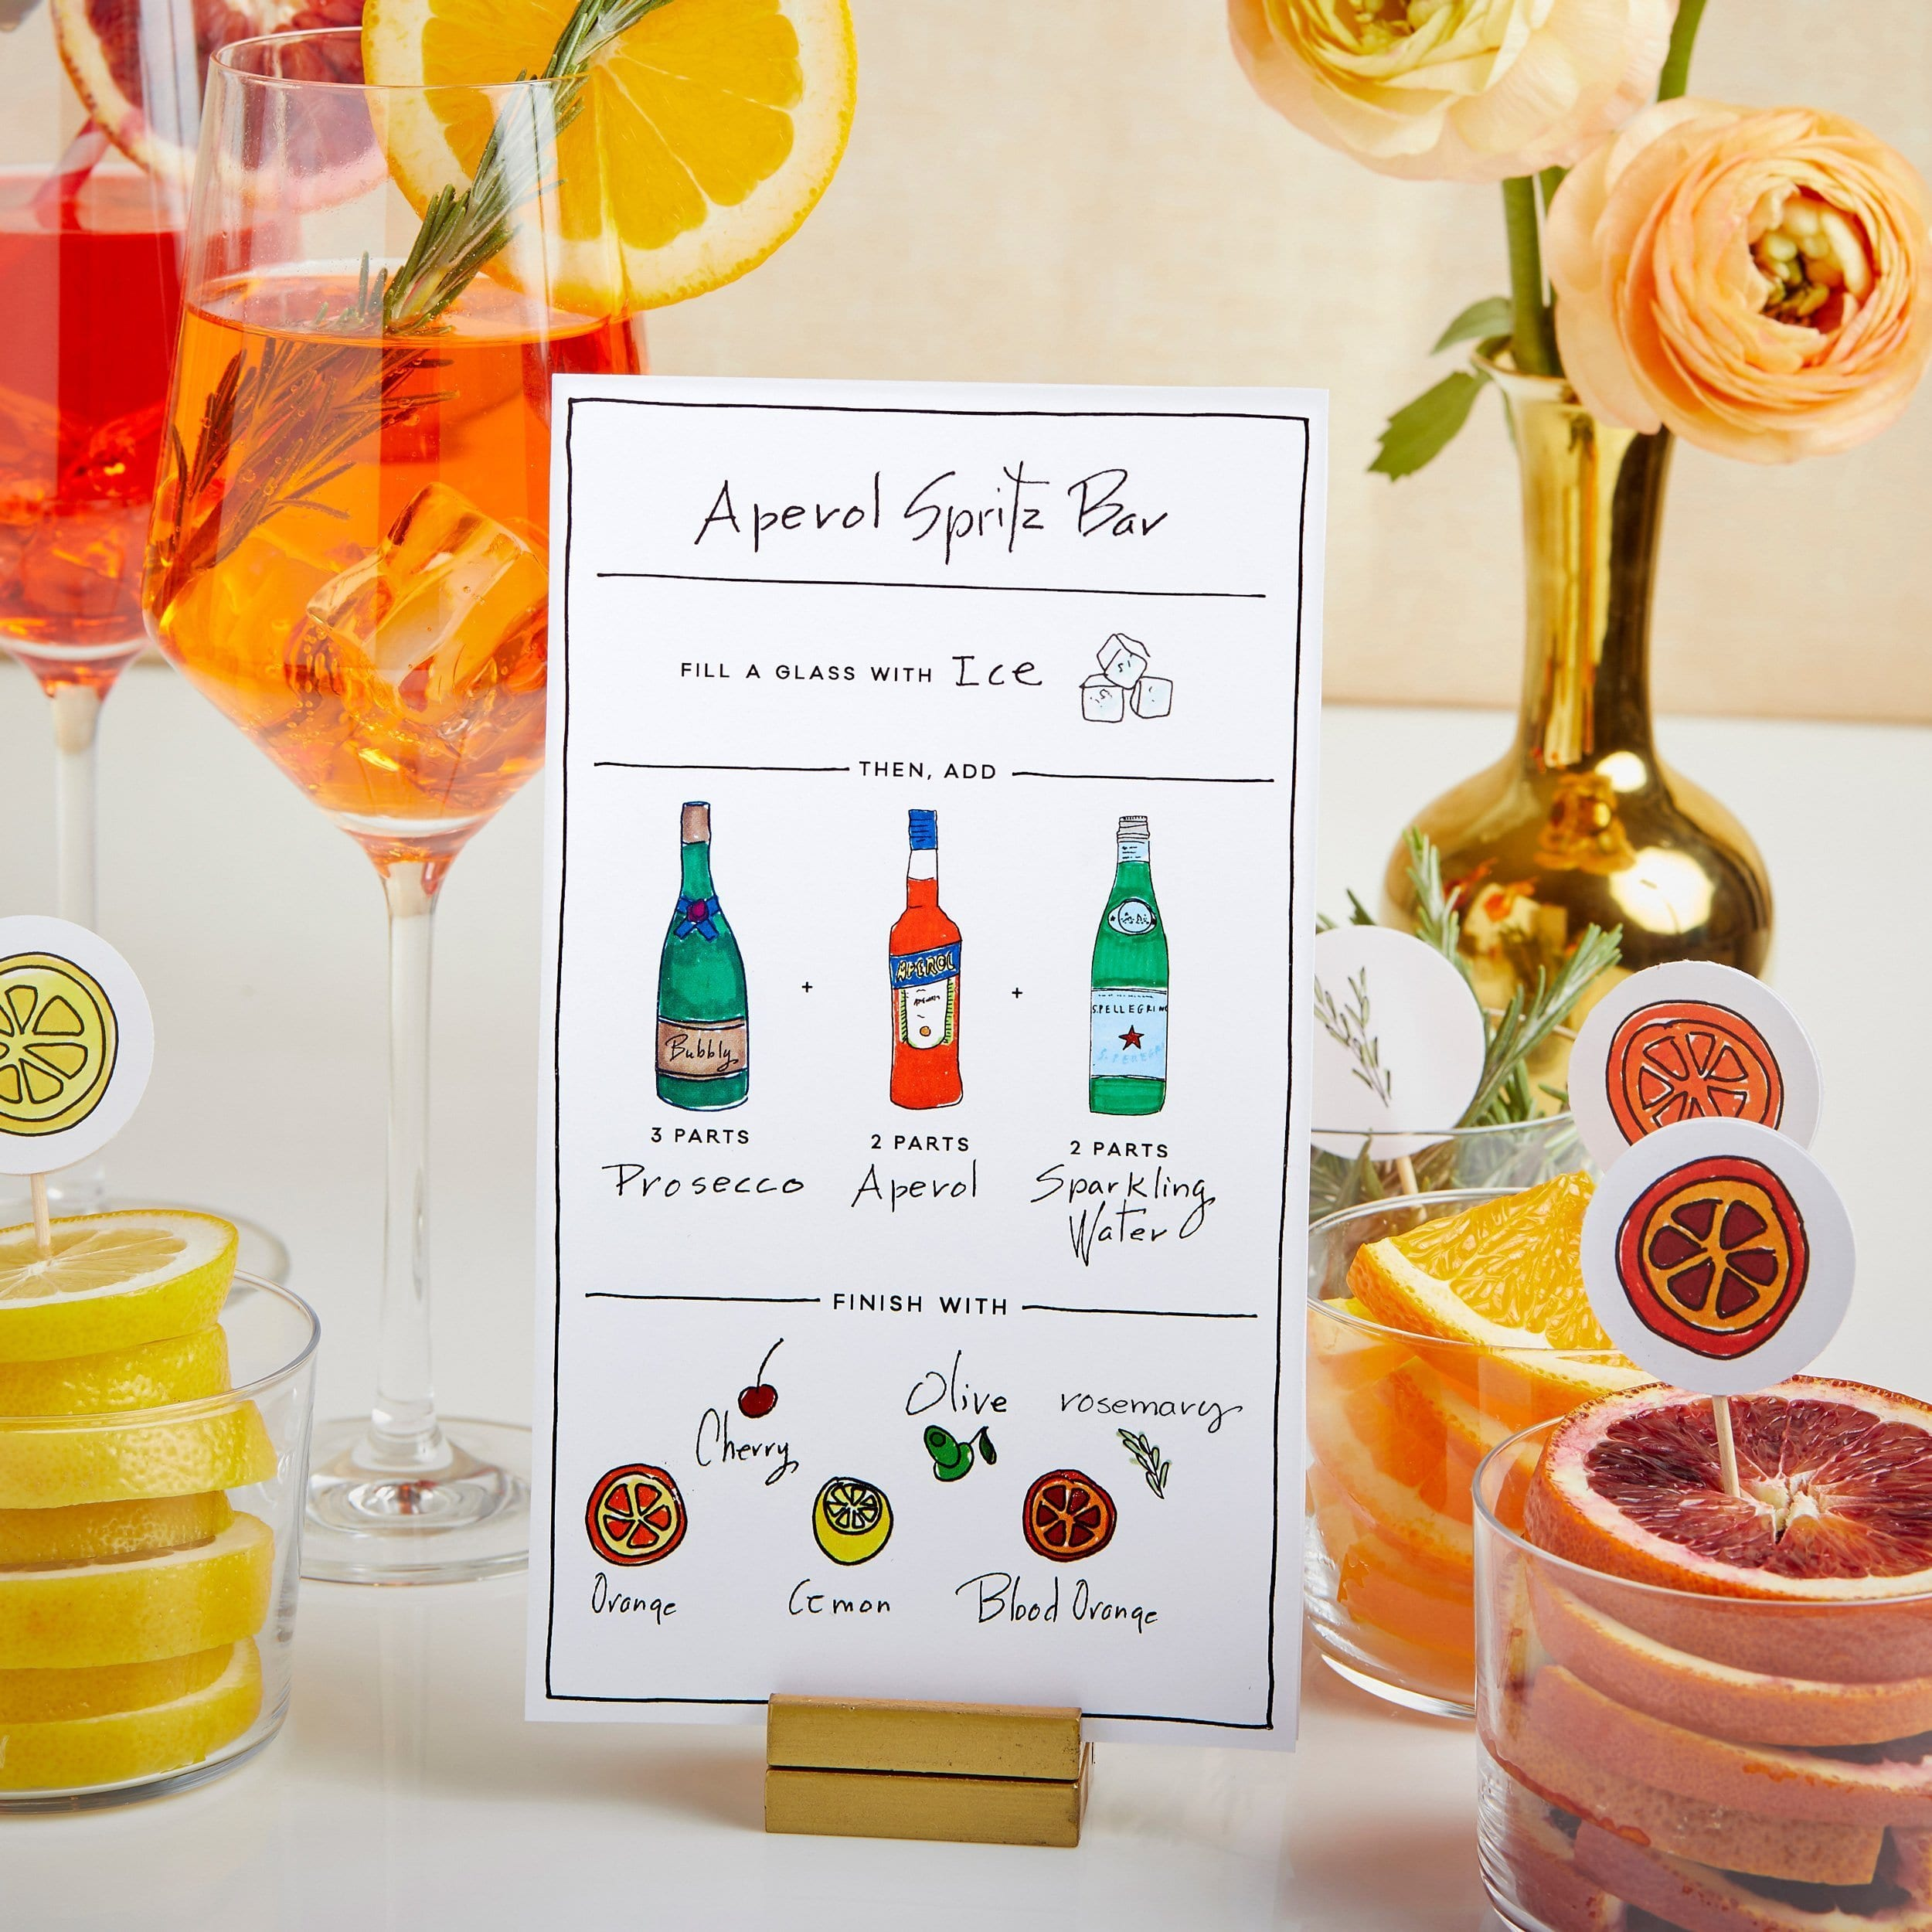 Darcy Miller Designs, Darcy Miller, Spritz Bar, Party, Aperol Spritz, Bridal Shower